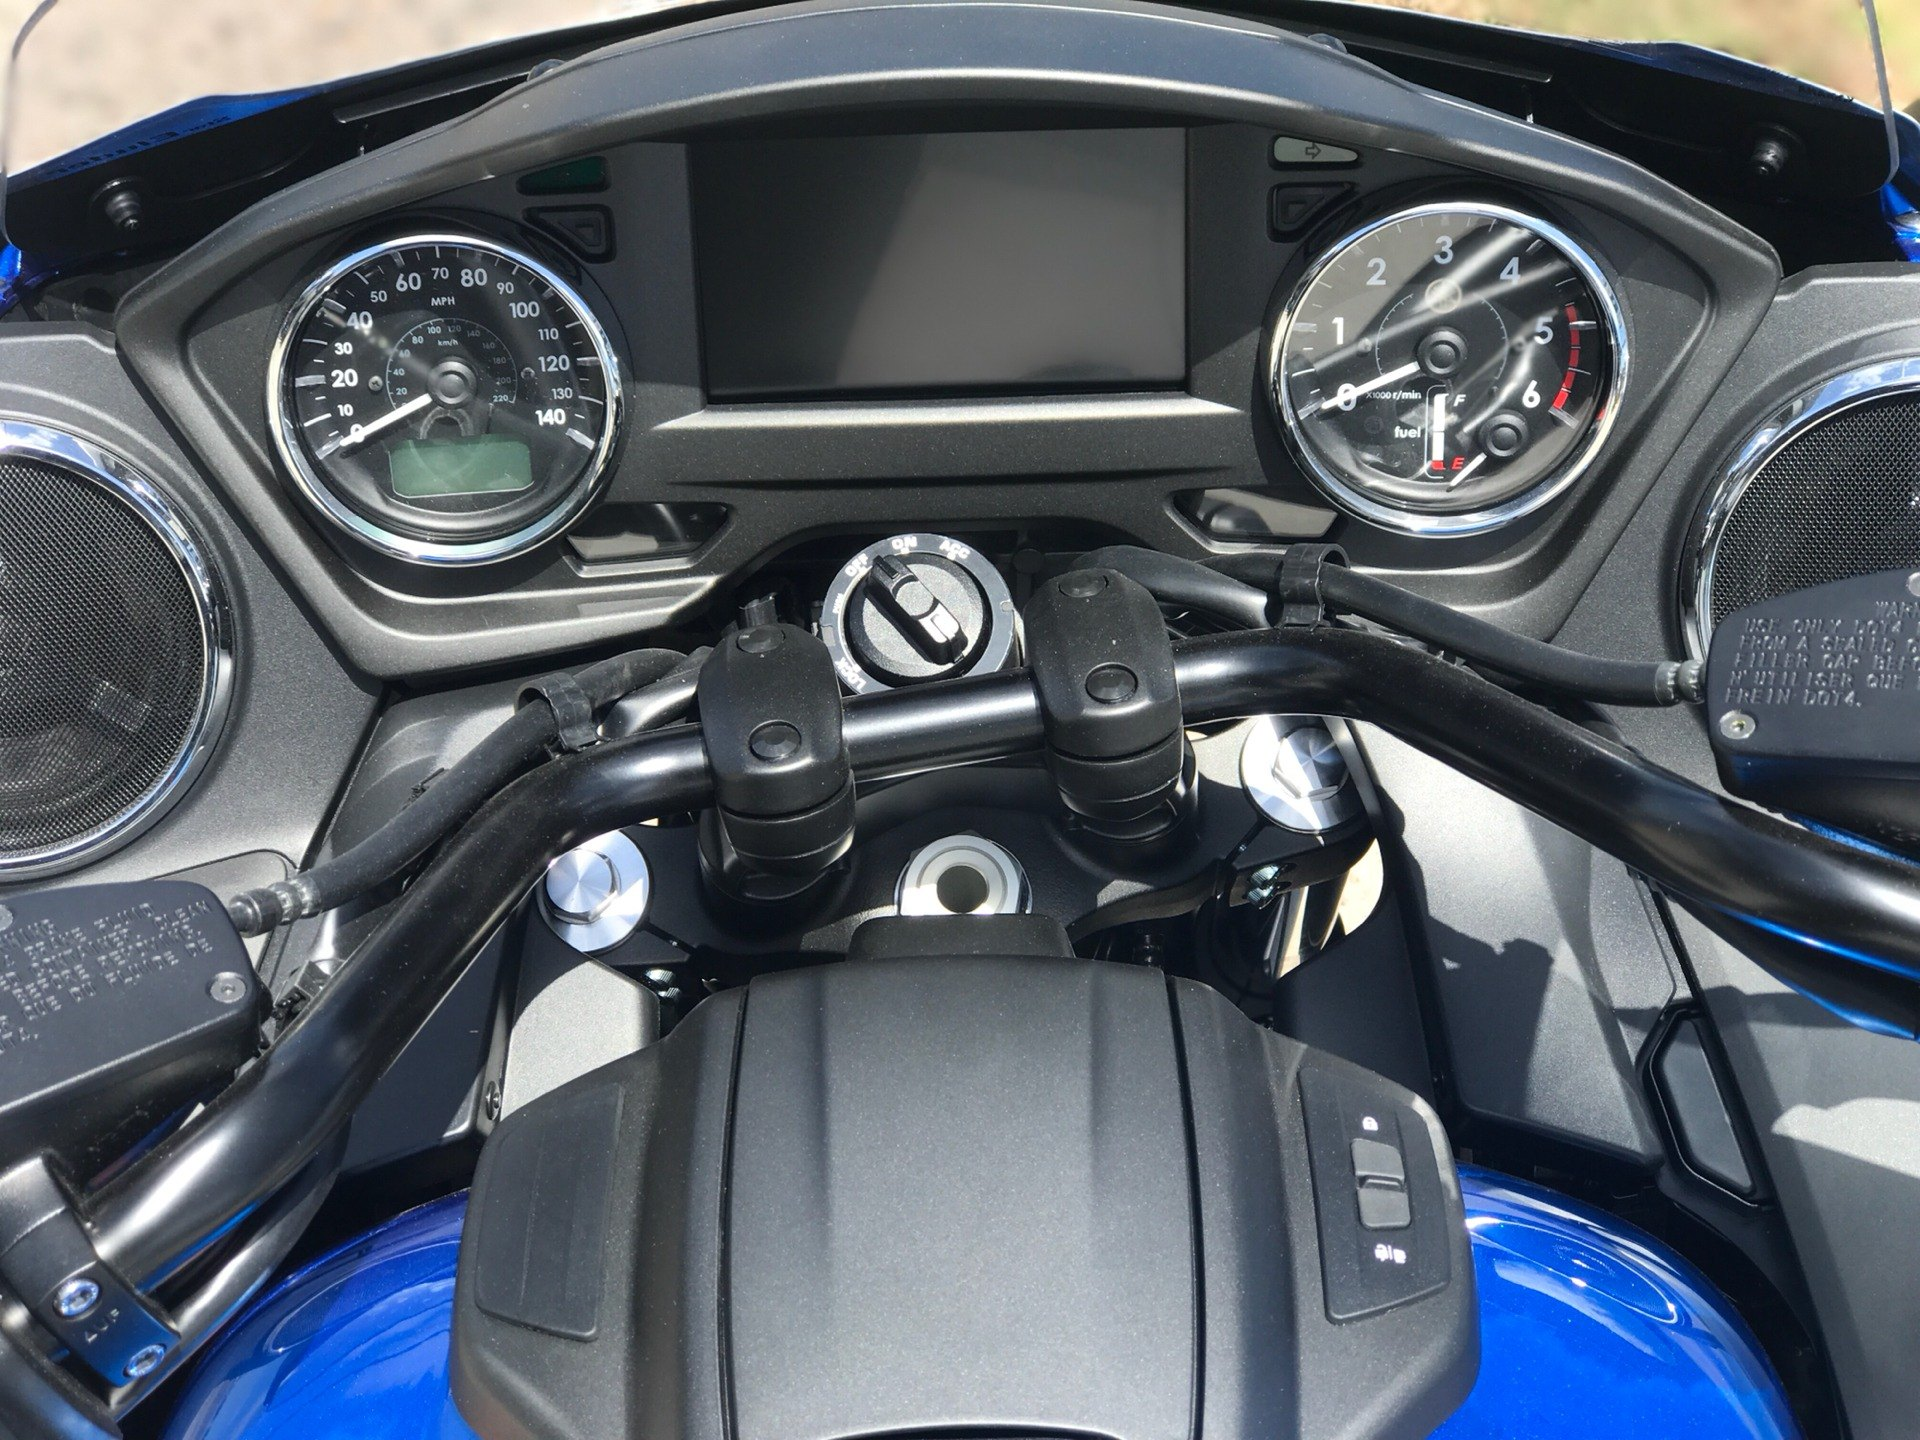 2018 Yamaha Star Eluder GT in Orlando, Florida - Photo 1